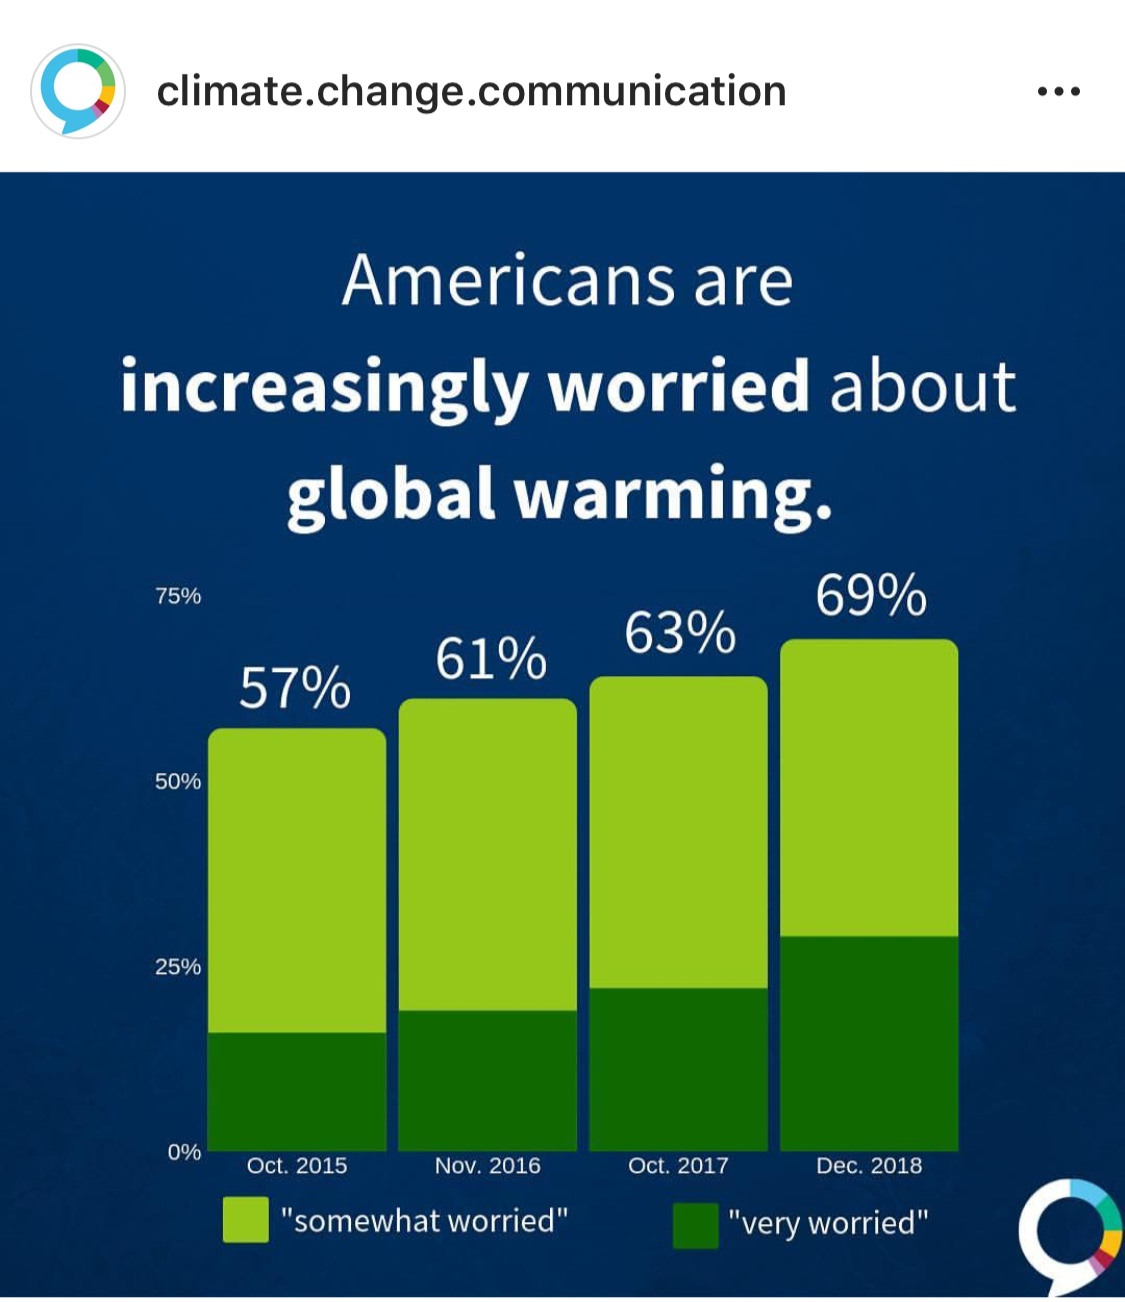 "Yale Program on Climate Change Communication WITH THE George Mason University Center for Climate Change Communication - HIGHLIGHTS (of many):Climate Opinion Maps 2018: ""These maps show how Americans' climate change beliefs, risk perceptions, and policy support vary at the state, congressional district, metro area, and county levels.""Climate Change in the American Mind, a multi-year survey.""Our prior research has categorized Americans into six groups – Global Warming's Six Americas – based on their climate change beliefs, attitudes, and behaviors. The ""Alarmed"" are the most worried about global warming and most supportive of aggressive action to reduce carbon pollution. In contrast, the ""Dismissive"" do not believe global warming is happening or human-caused and strongly oppose climate action. [A short ""Six Americas"" quiz is now publicly available online.]Our latest survey in December 2018 finds that the Alarmed segment is at an all-time high (29%) – which is double that segment's size in 2013 and an 8-point increase since March 2018. Conversely, the Dismissive (9%) and Doubtful (9%) segments have both decreased over the last five years. The percentage of Americans in these two segments has declined by 12 points since 2013."" Explore here."